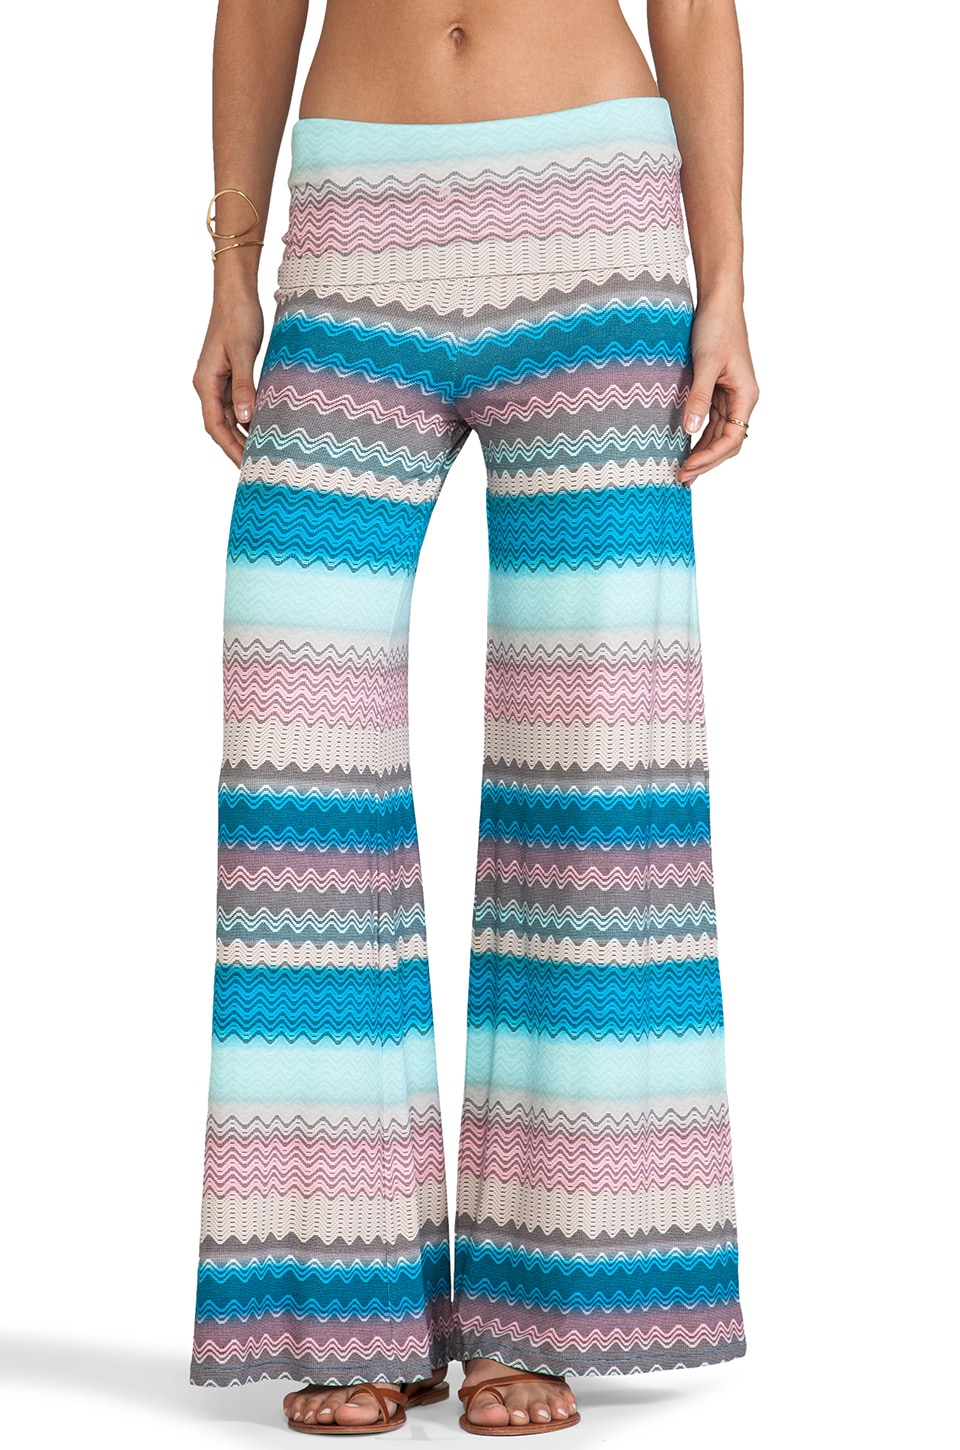 Karina Grimaldi Basik Knit Pants in Ocean Knit